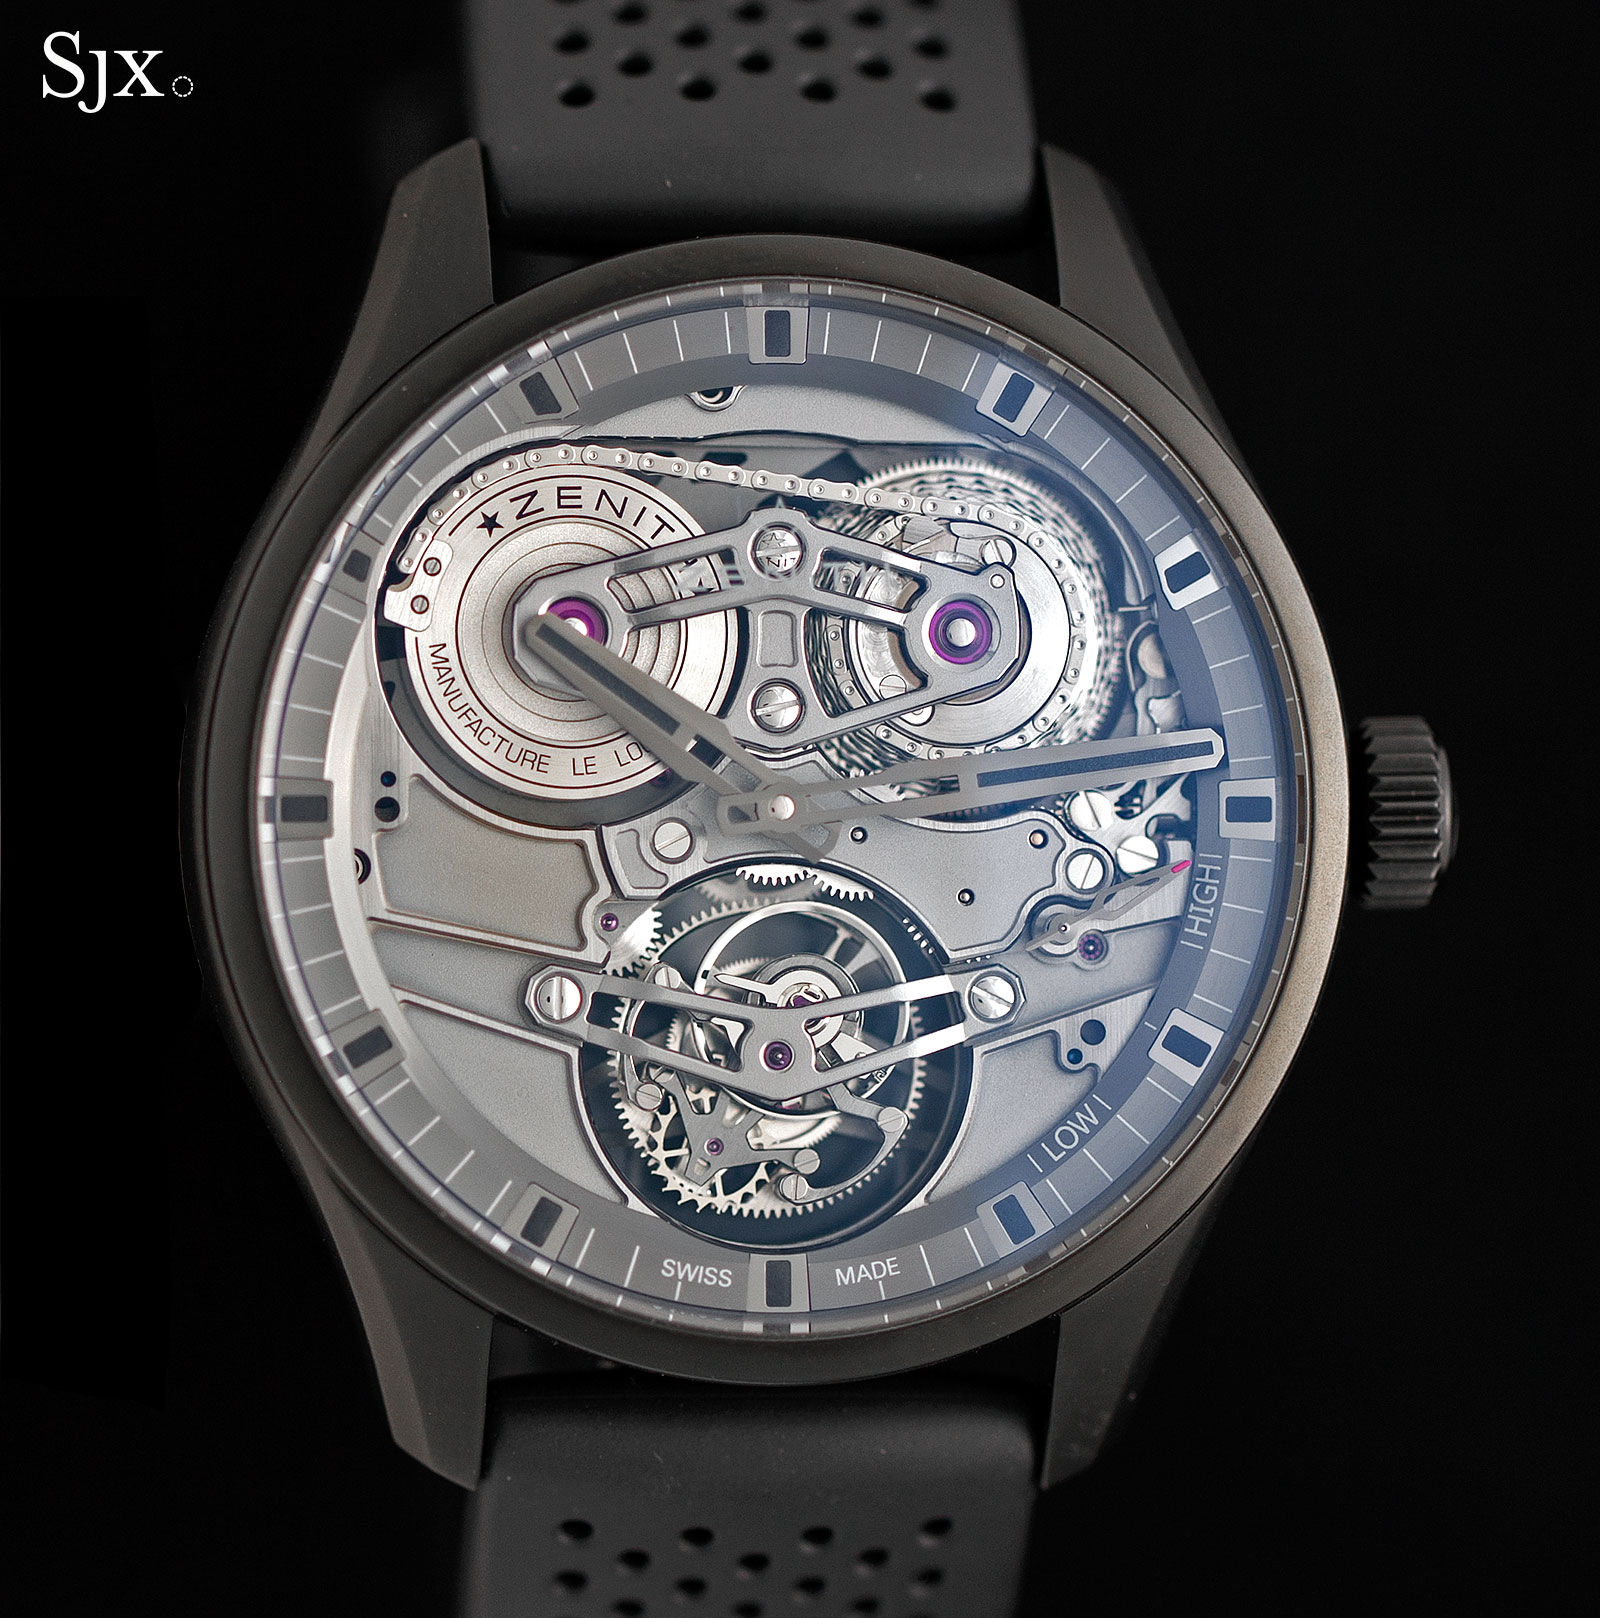 Zenith Academy Georges Favre-Jacot Tourbillon ceramic 2